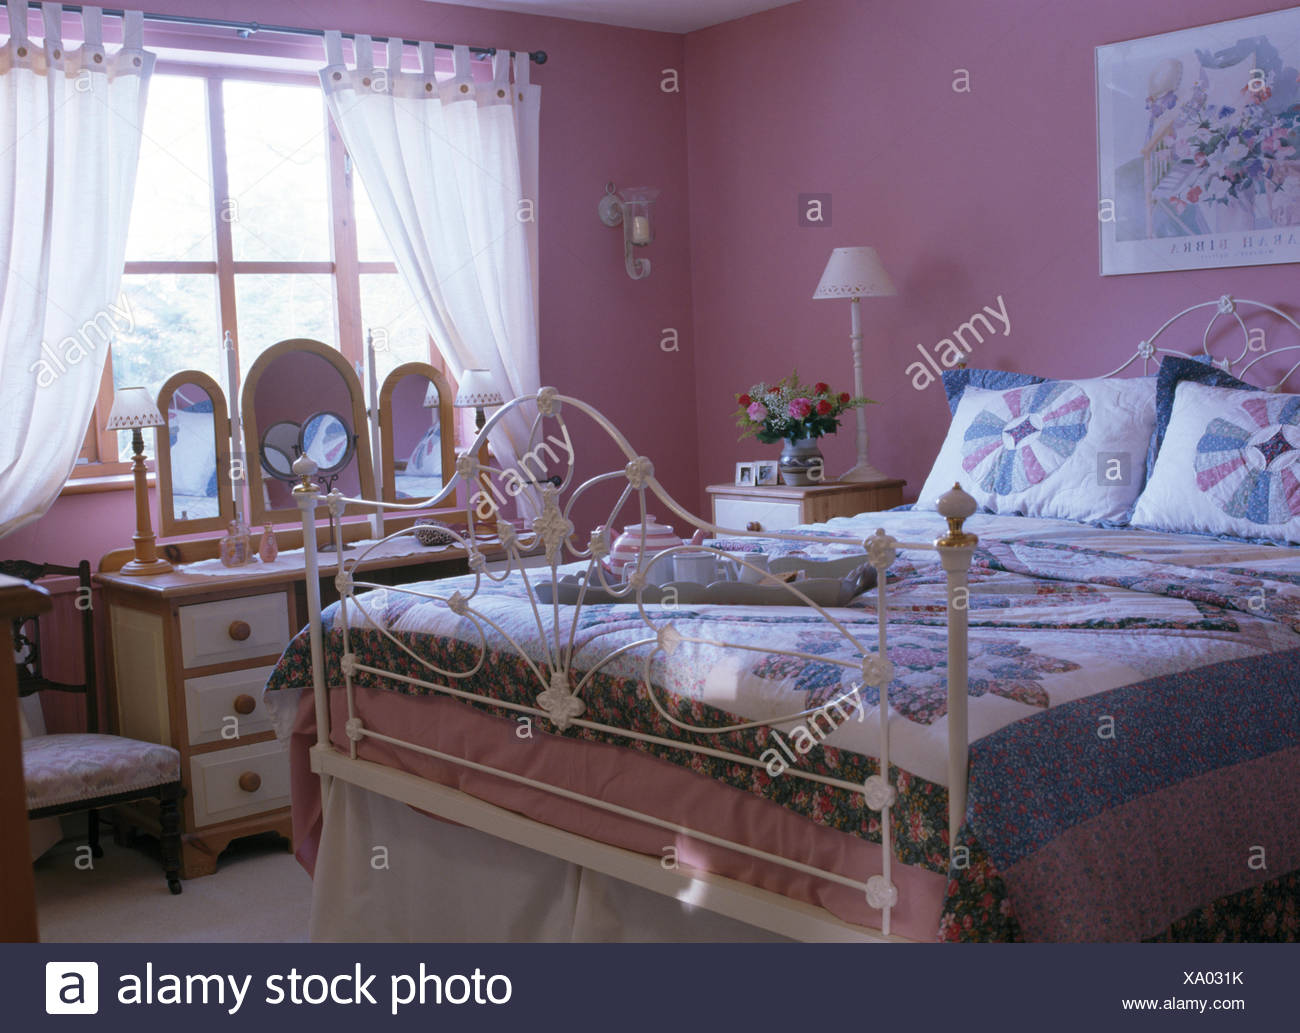 Ornate white wrought iron bed with patchwork quilt and ...